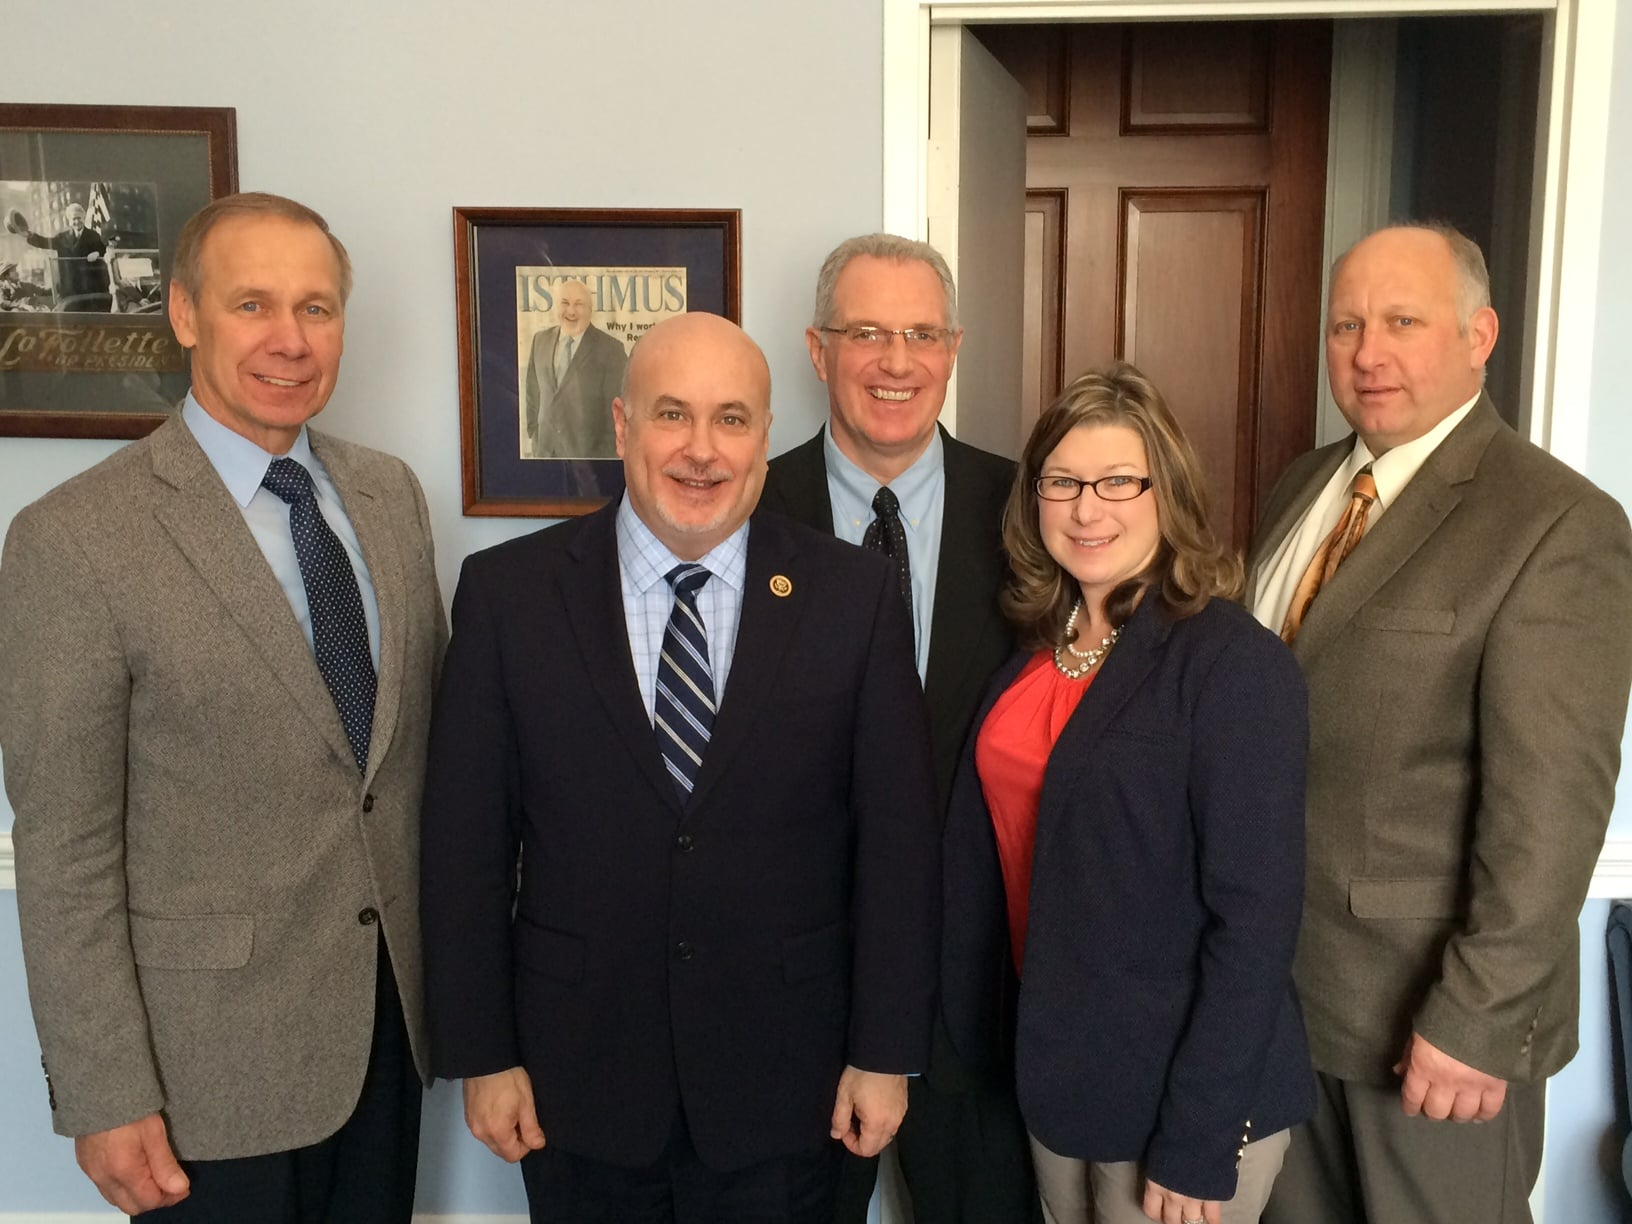 Wisconsin Farm Bureau members discused agriculture topics with Congressman Mark Pocan